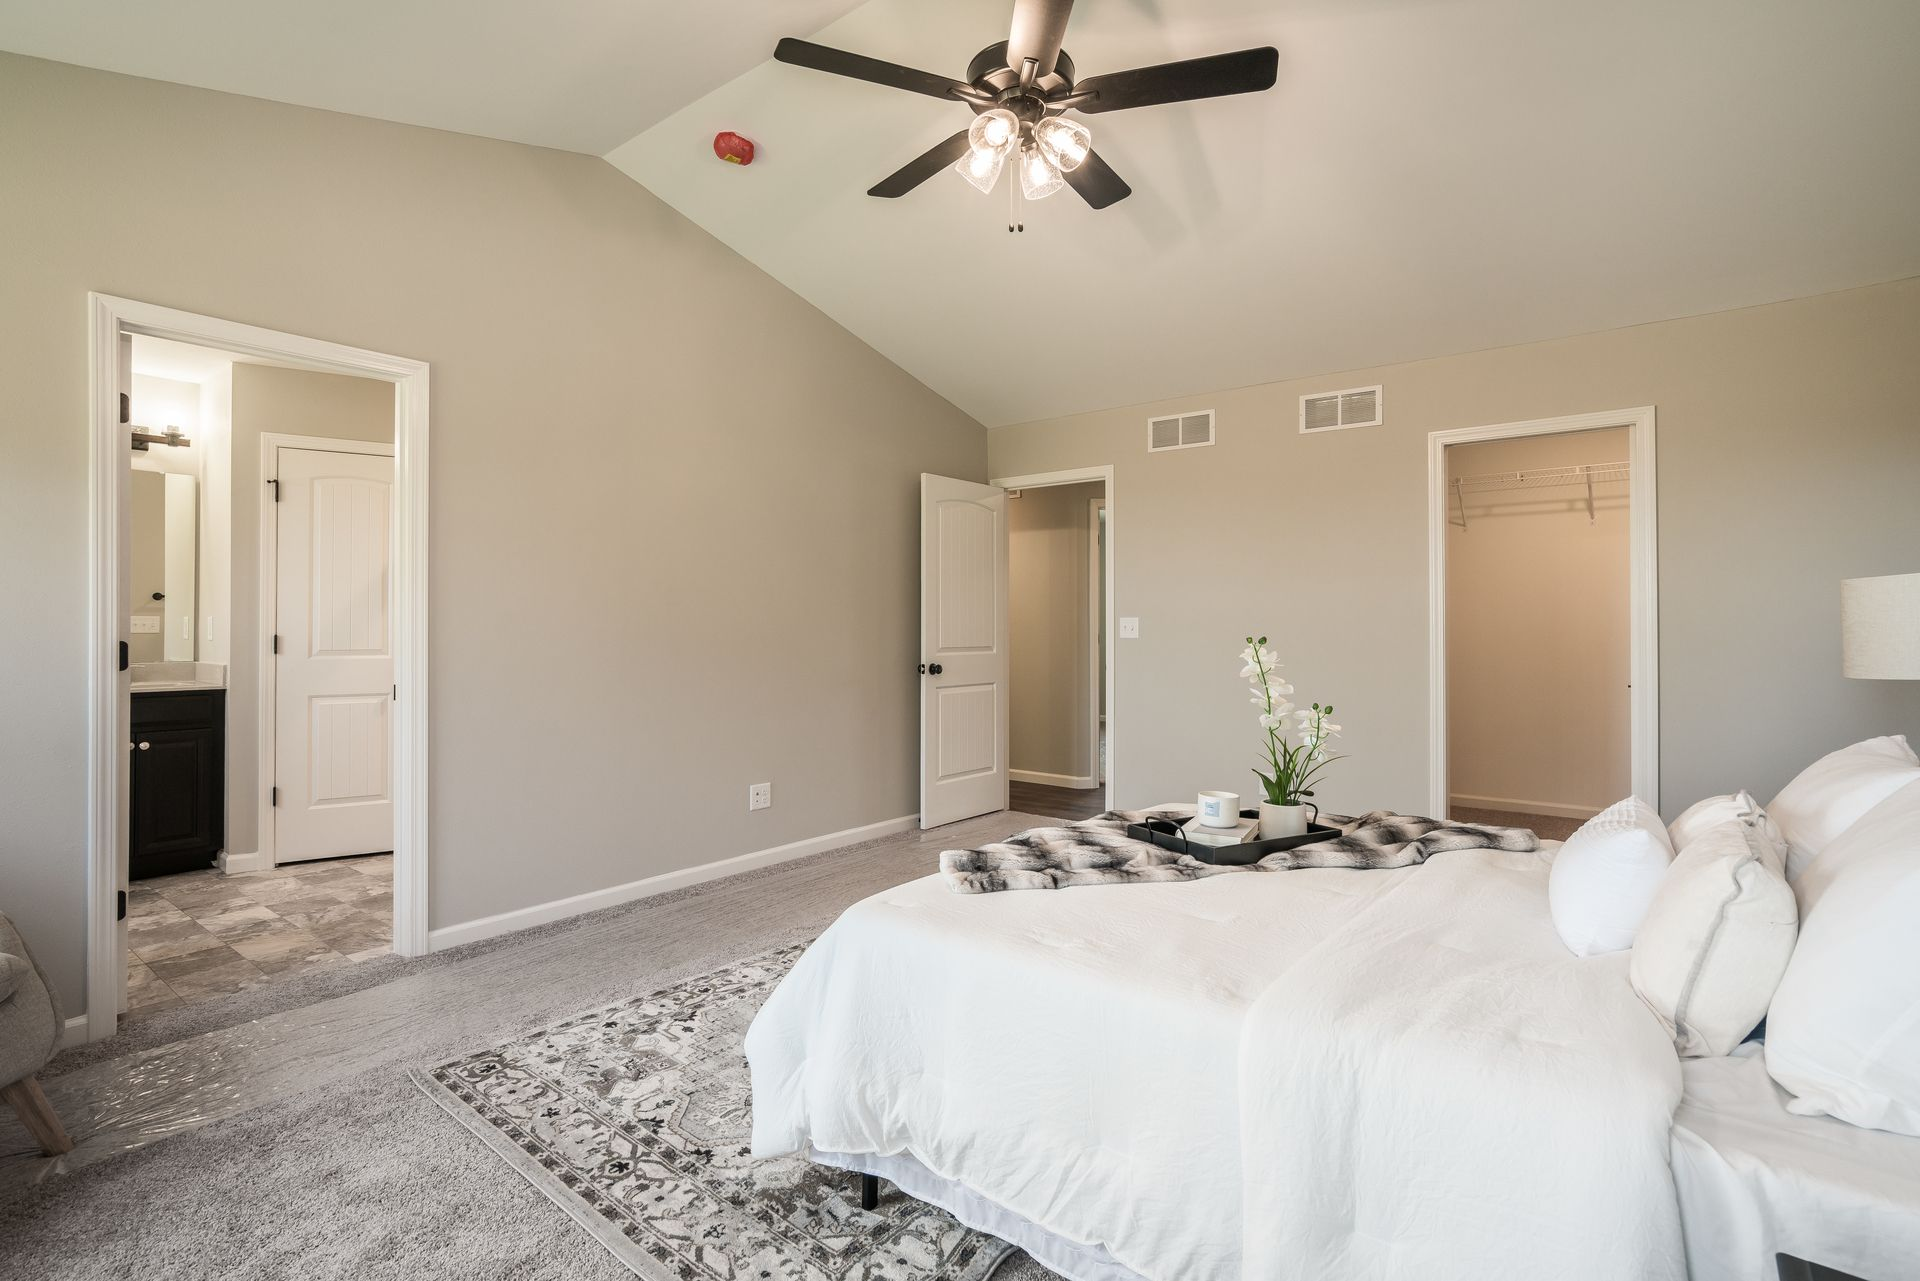 Bedroom featured in the Calais II By C.A. Jones, Inc.  in St. Louis, IL